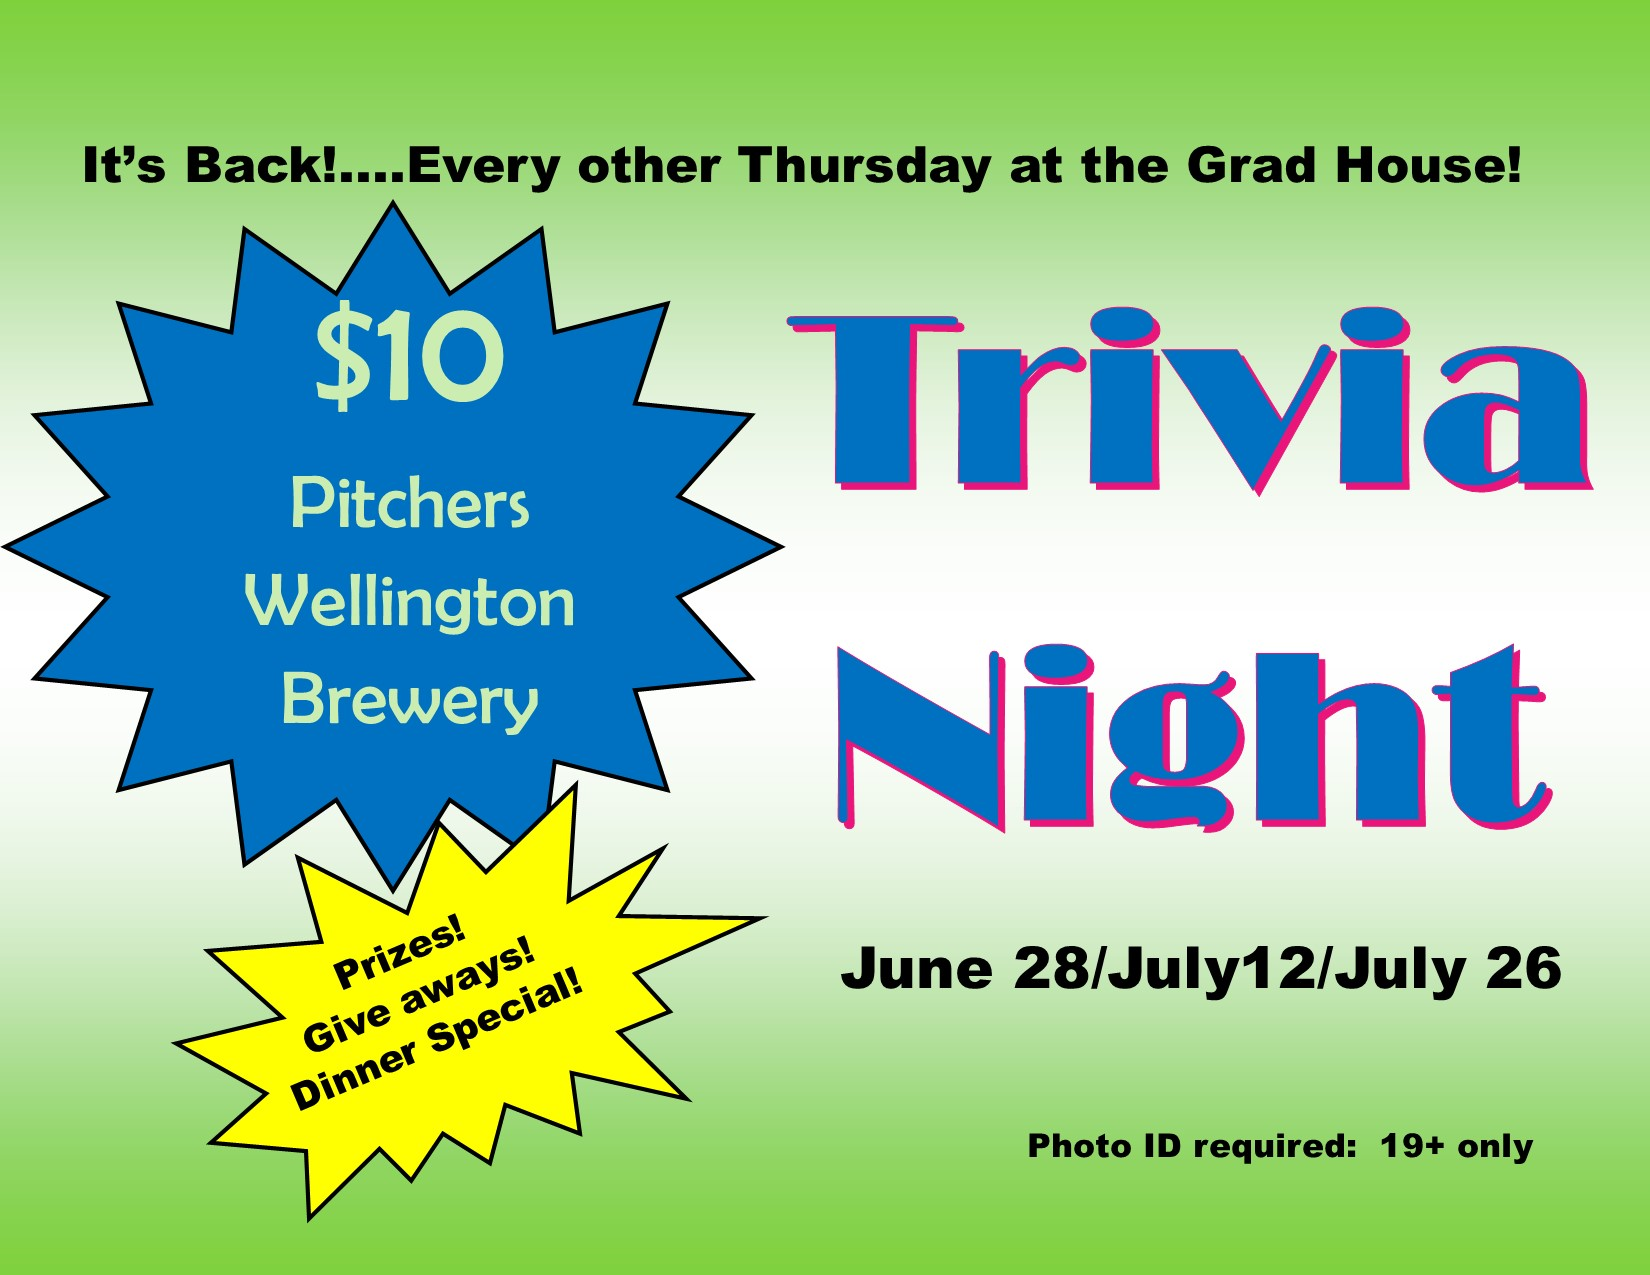 Poster for Trivia Night at the Grad House.